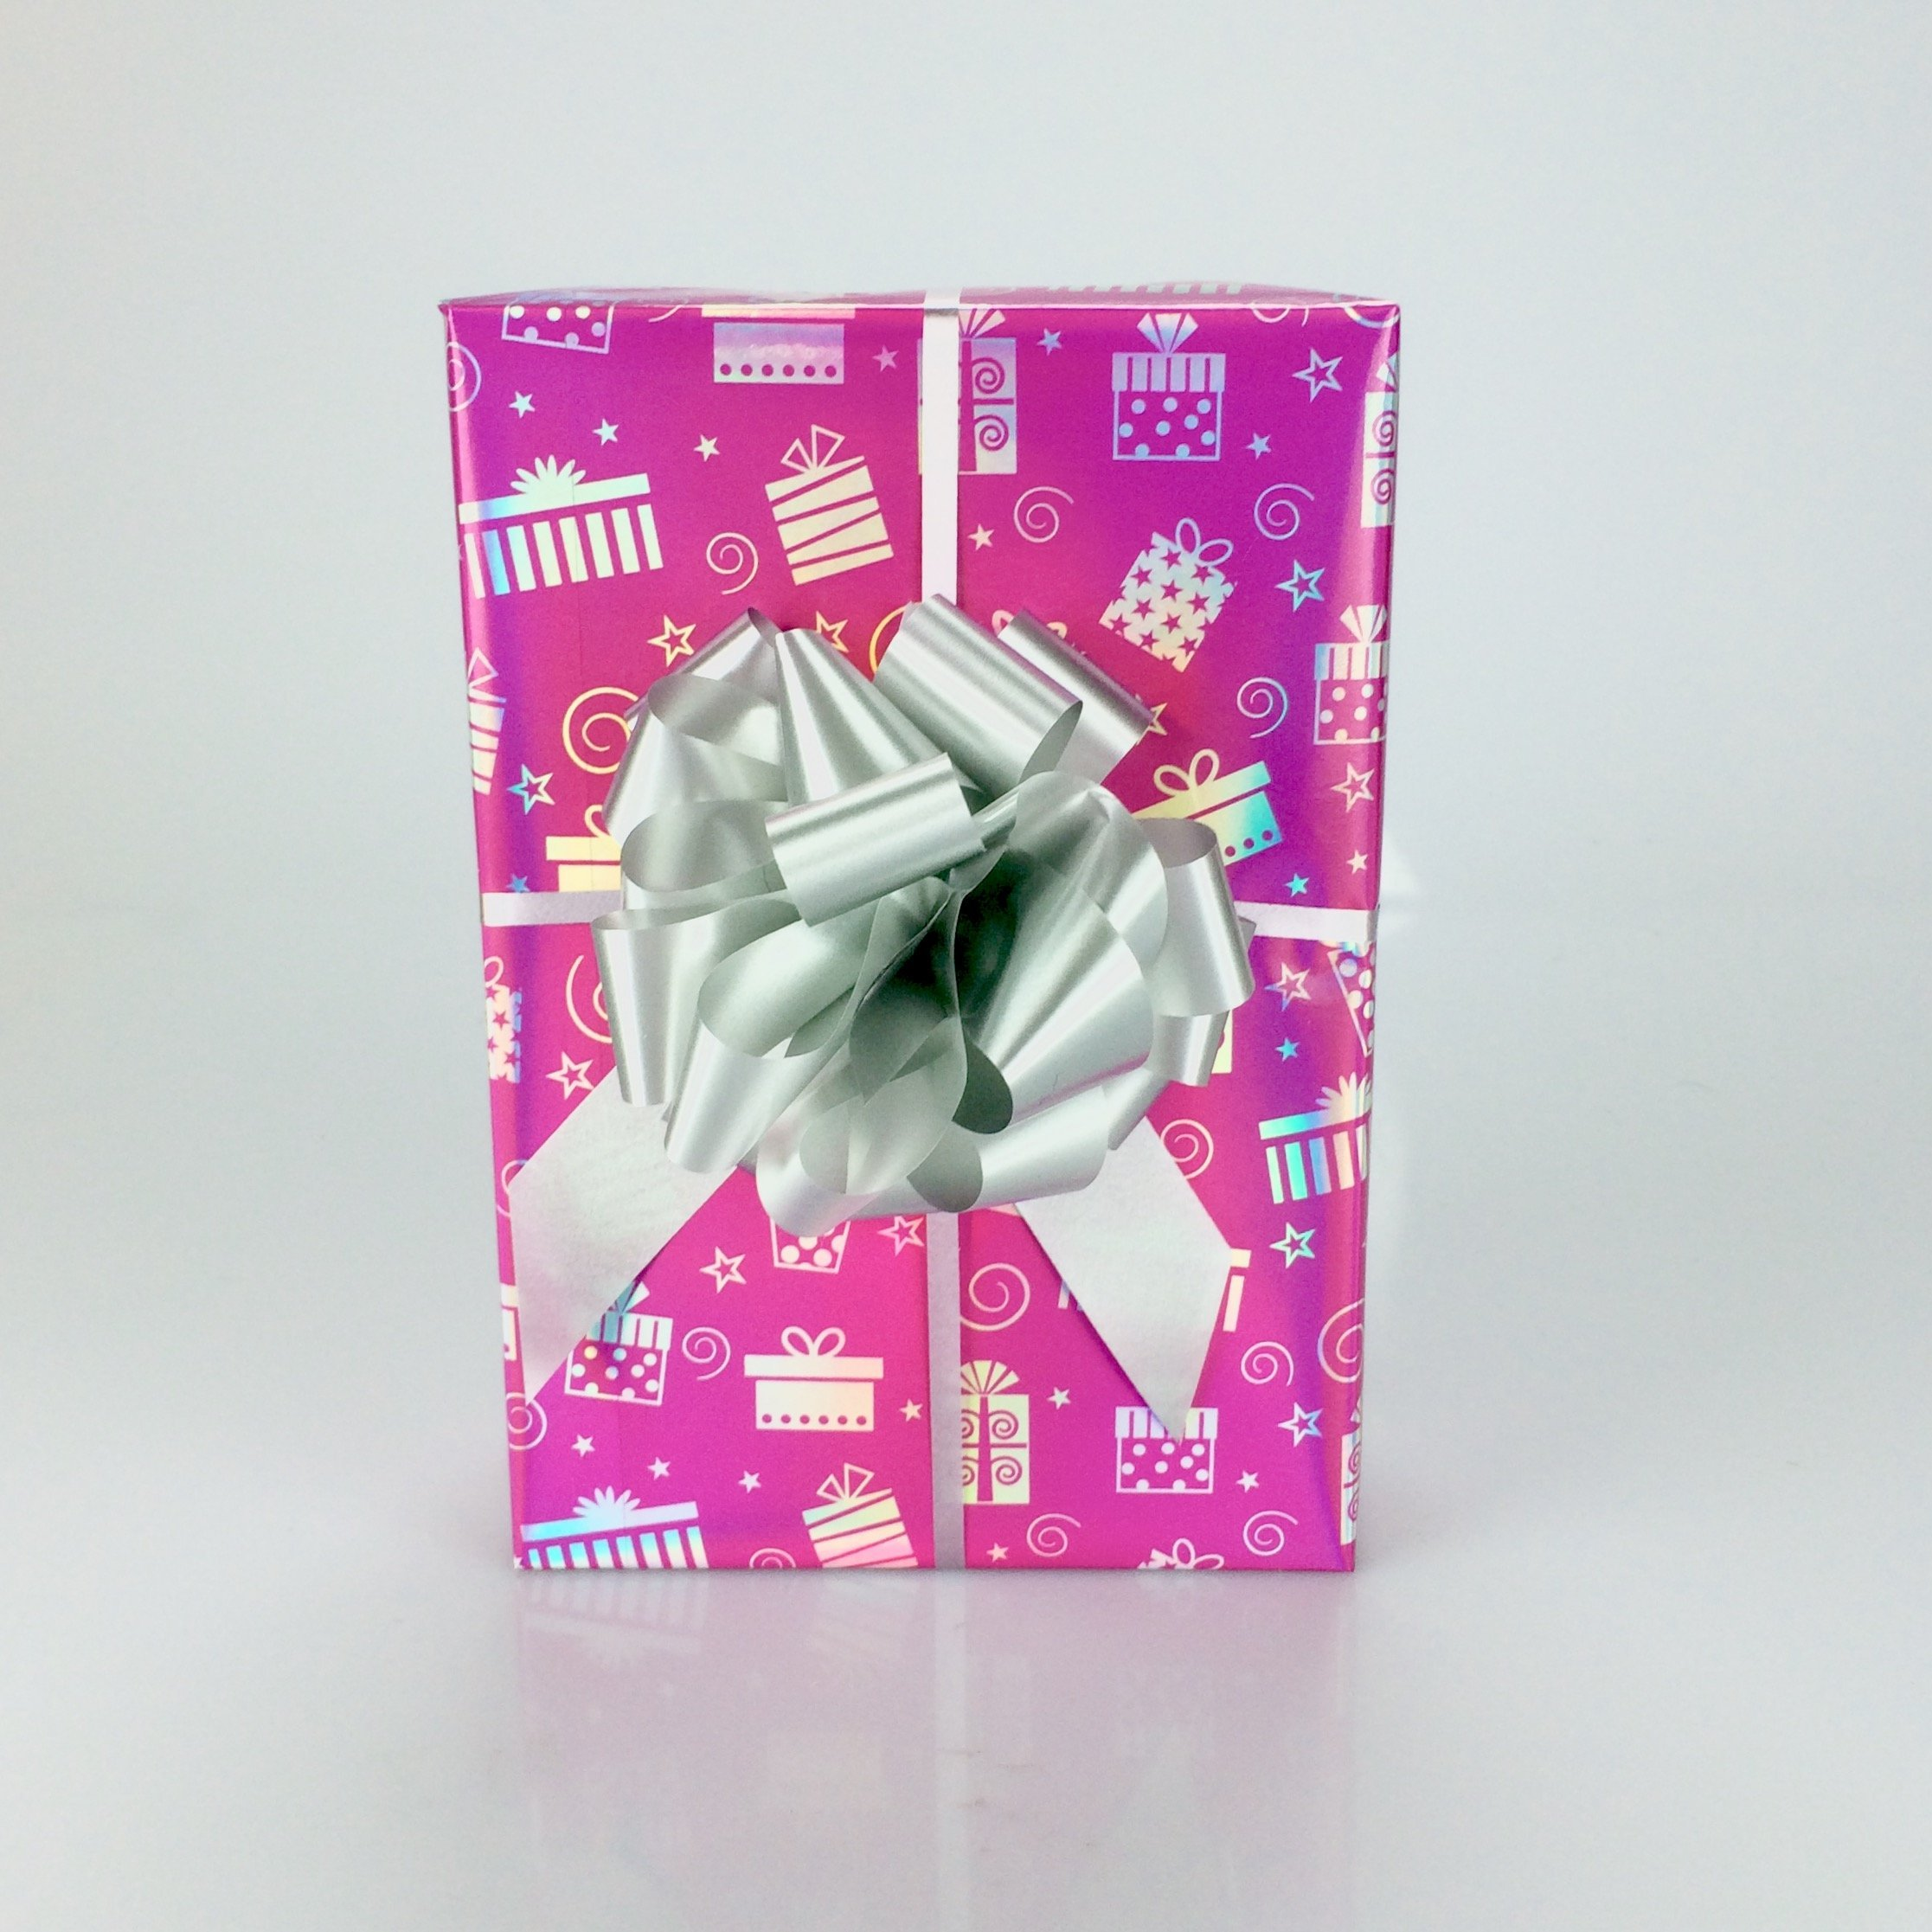 Happy 30th Birthday Gift Wrapped Retro Sweet Hamper Box Male Or Female Themed